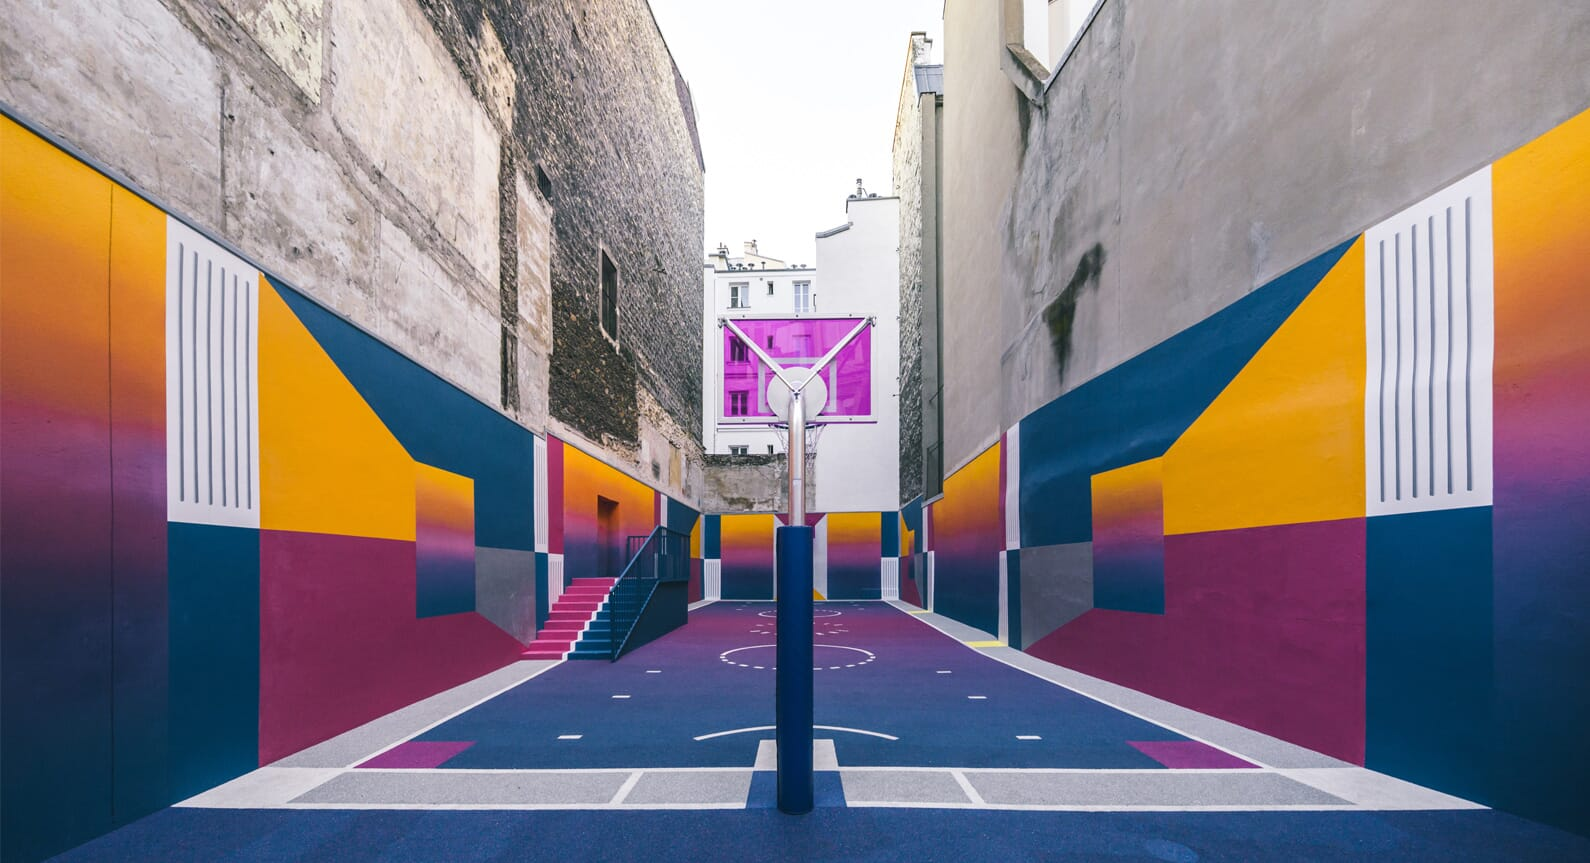 Paris' Pigalle Basketball Court Receives A Spectacular Redesign